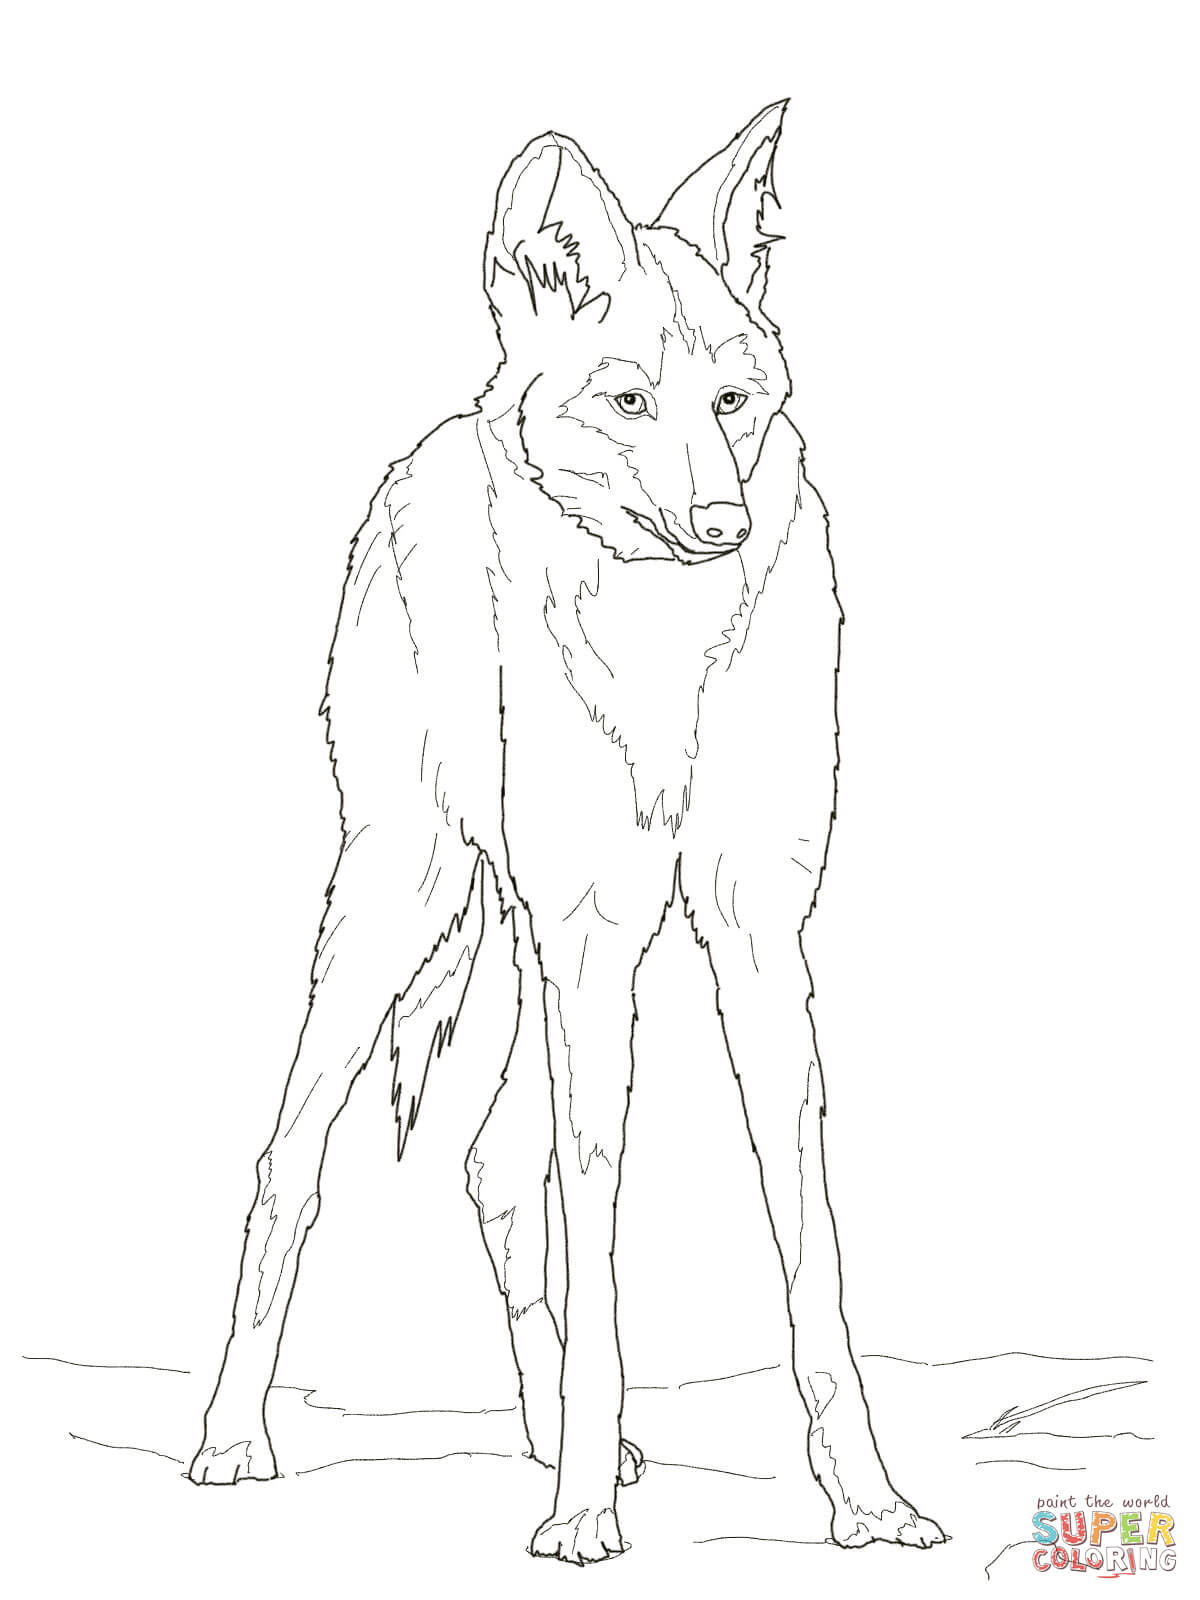 Reddish Maned Wolf coloring page | Free Printable Coloring ...